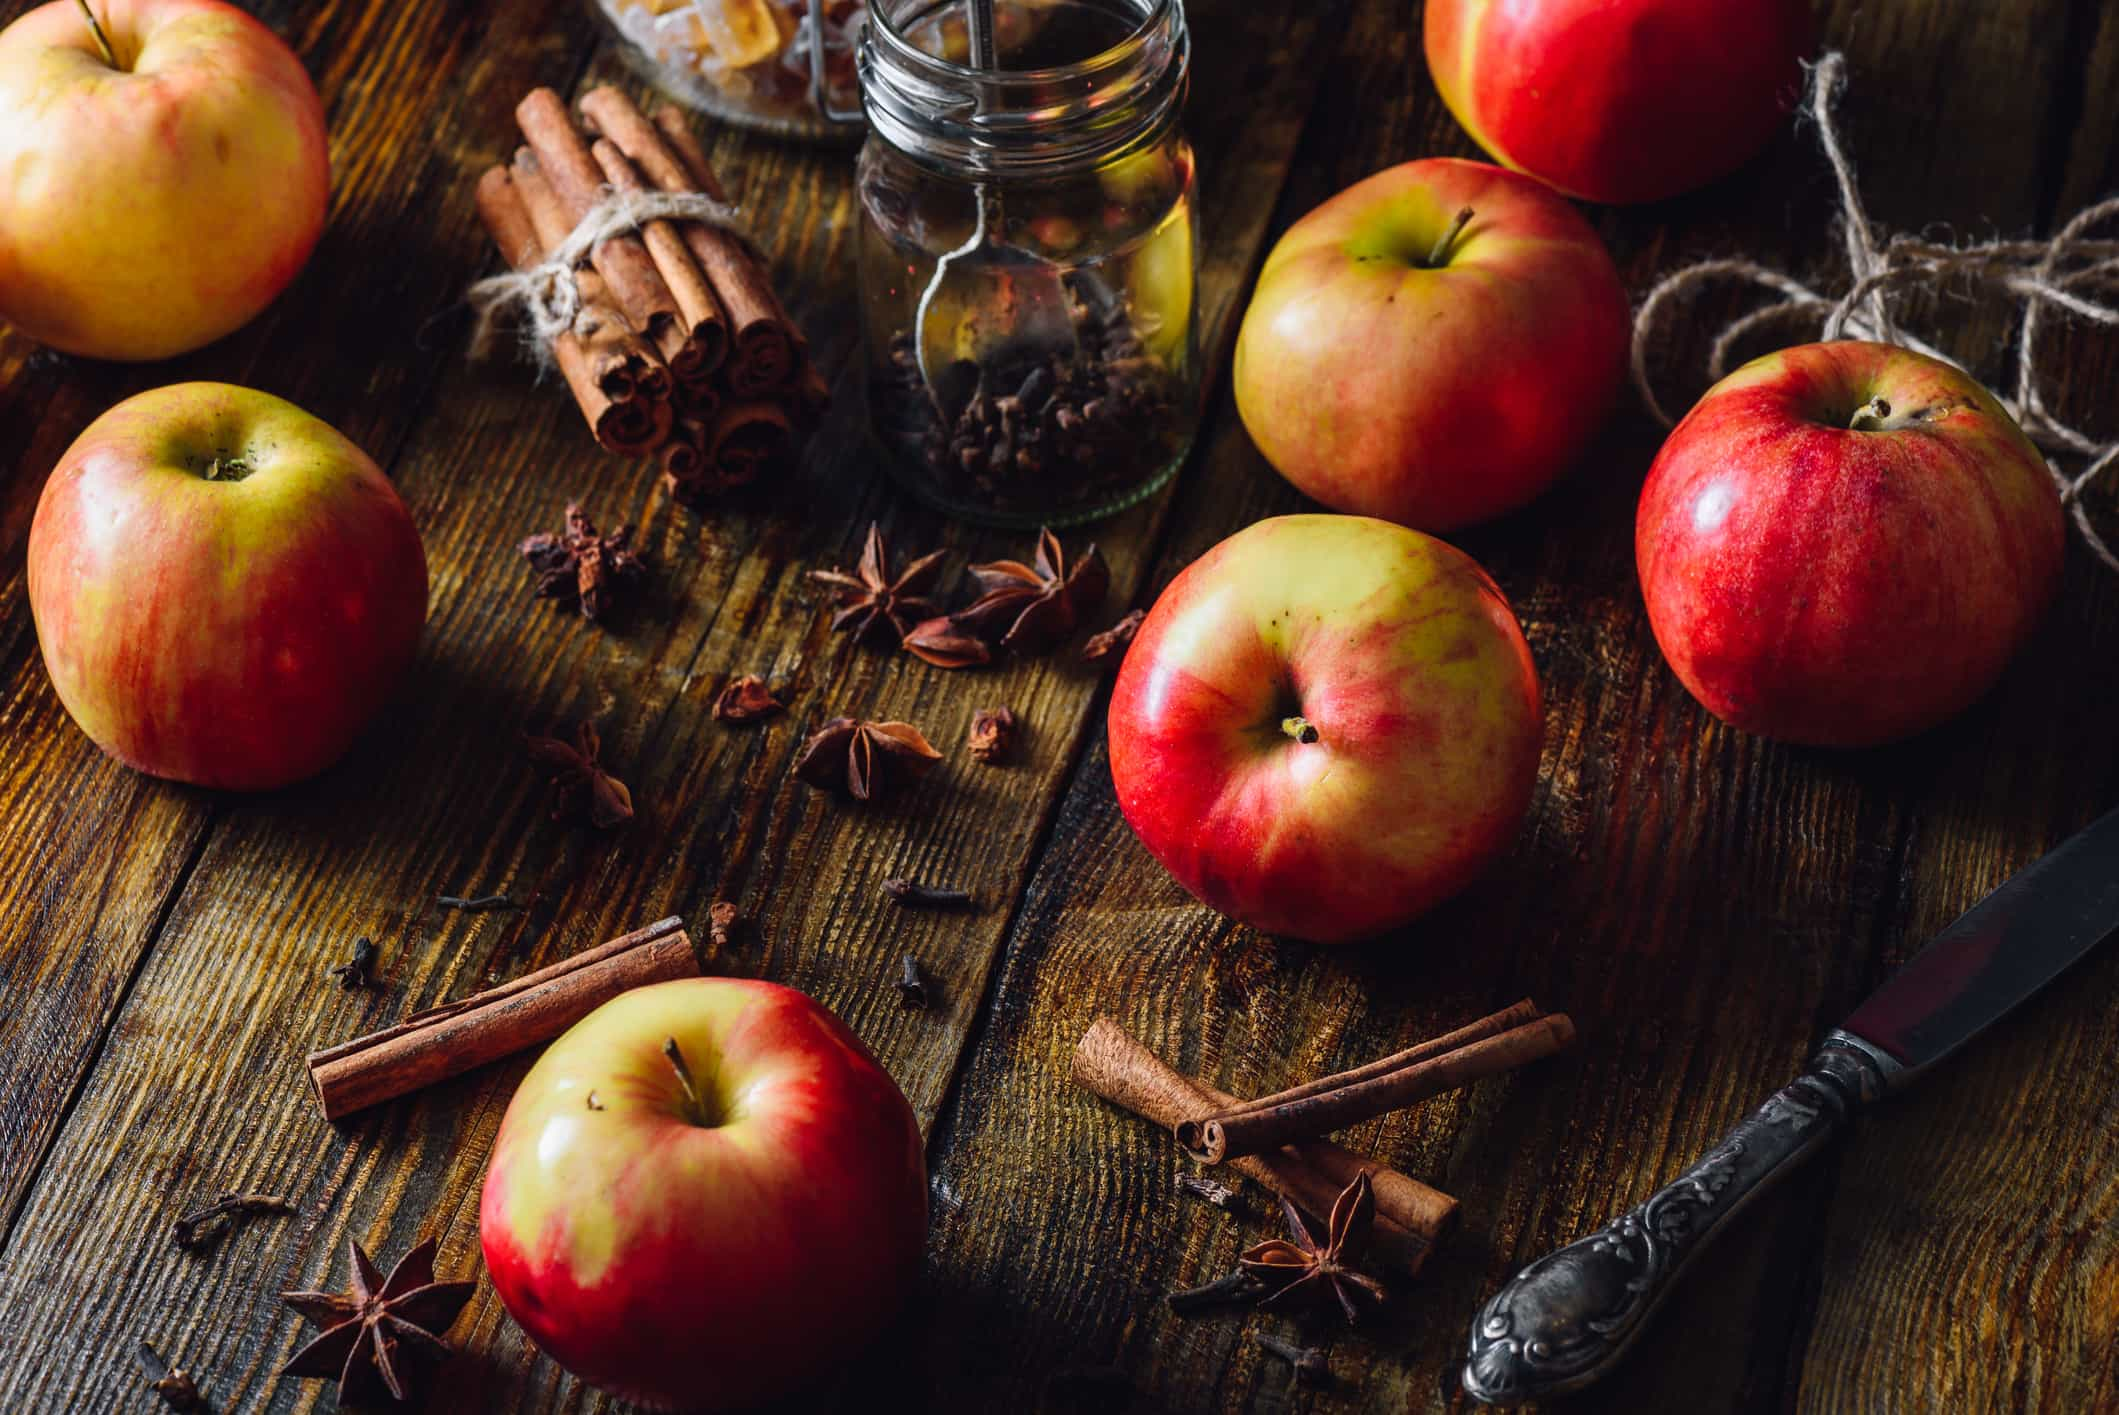 Apples with Clove, Cinnamon and Anise Star.